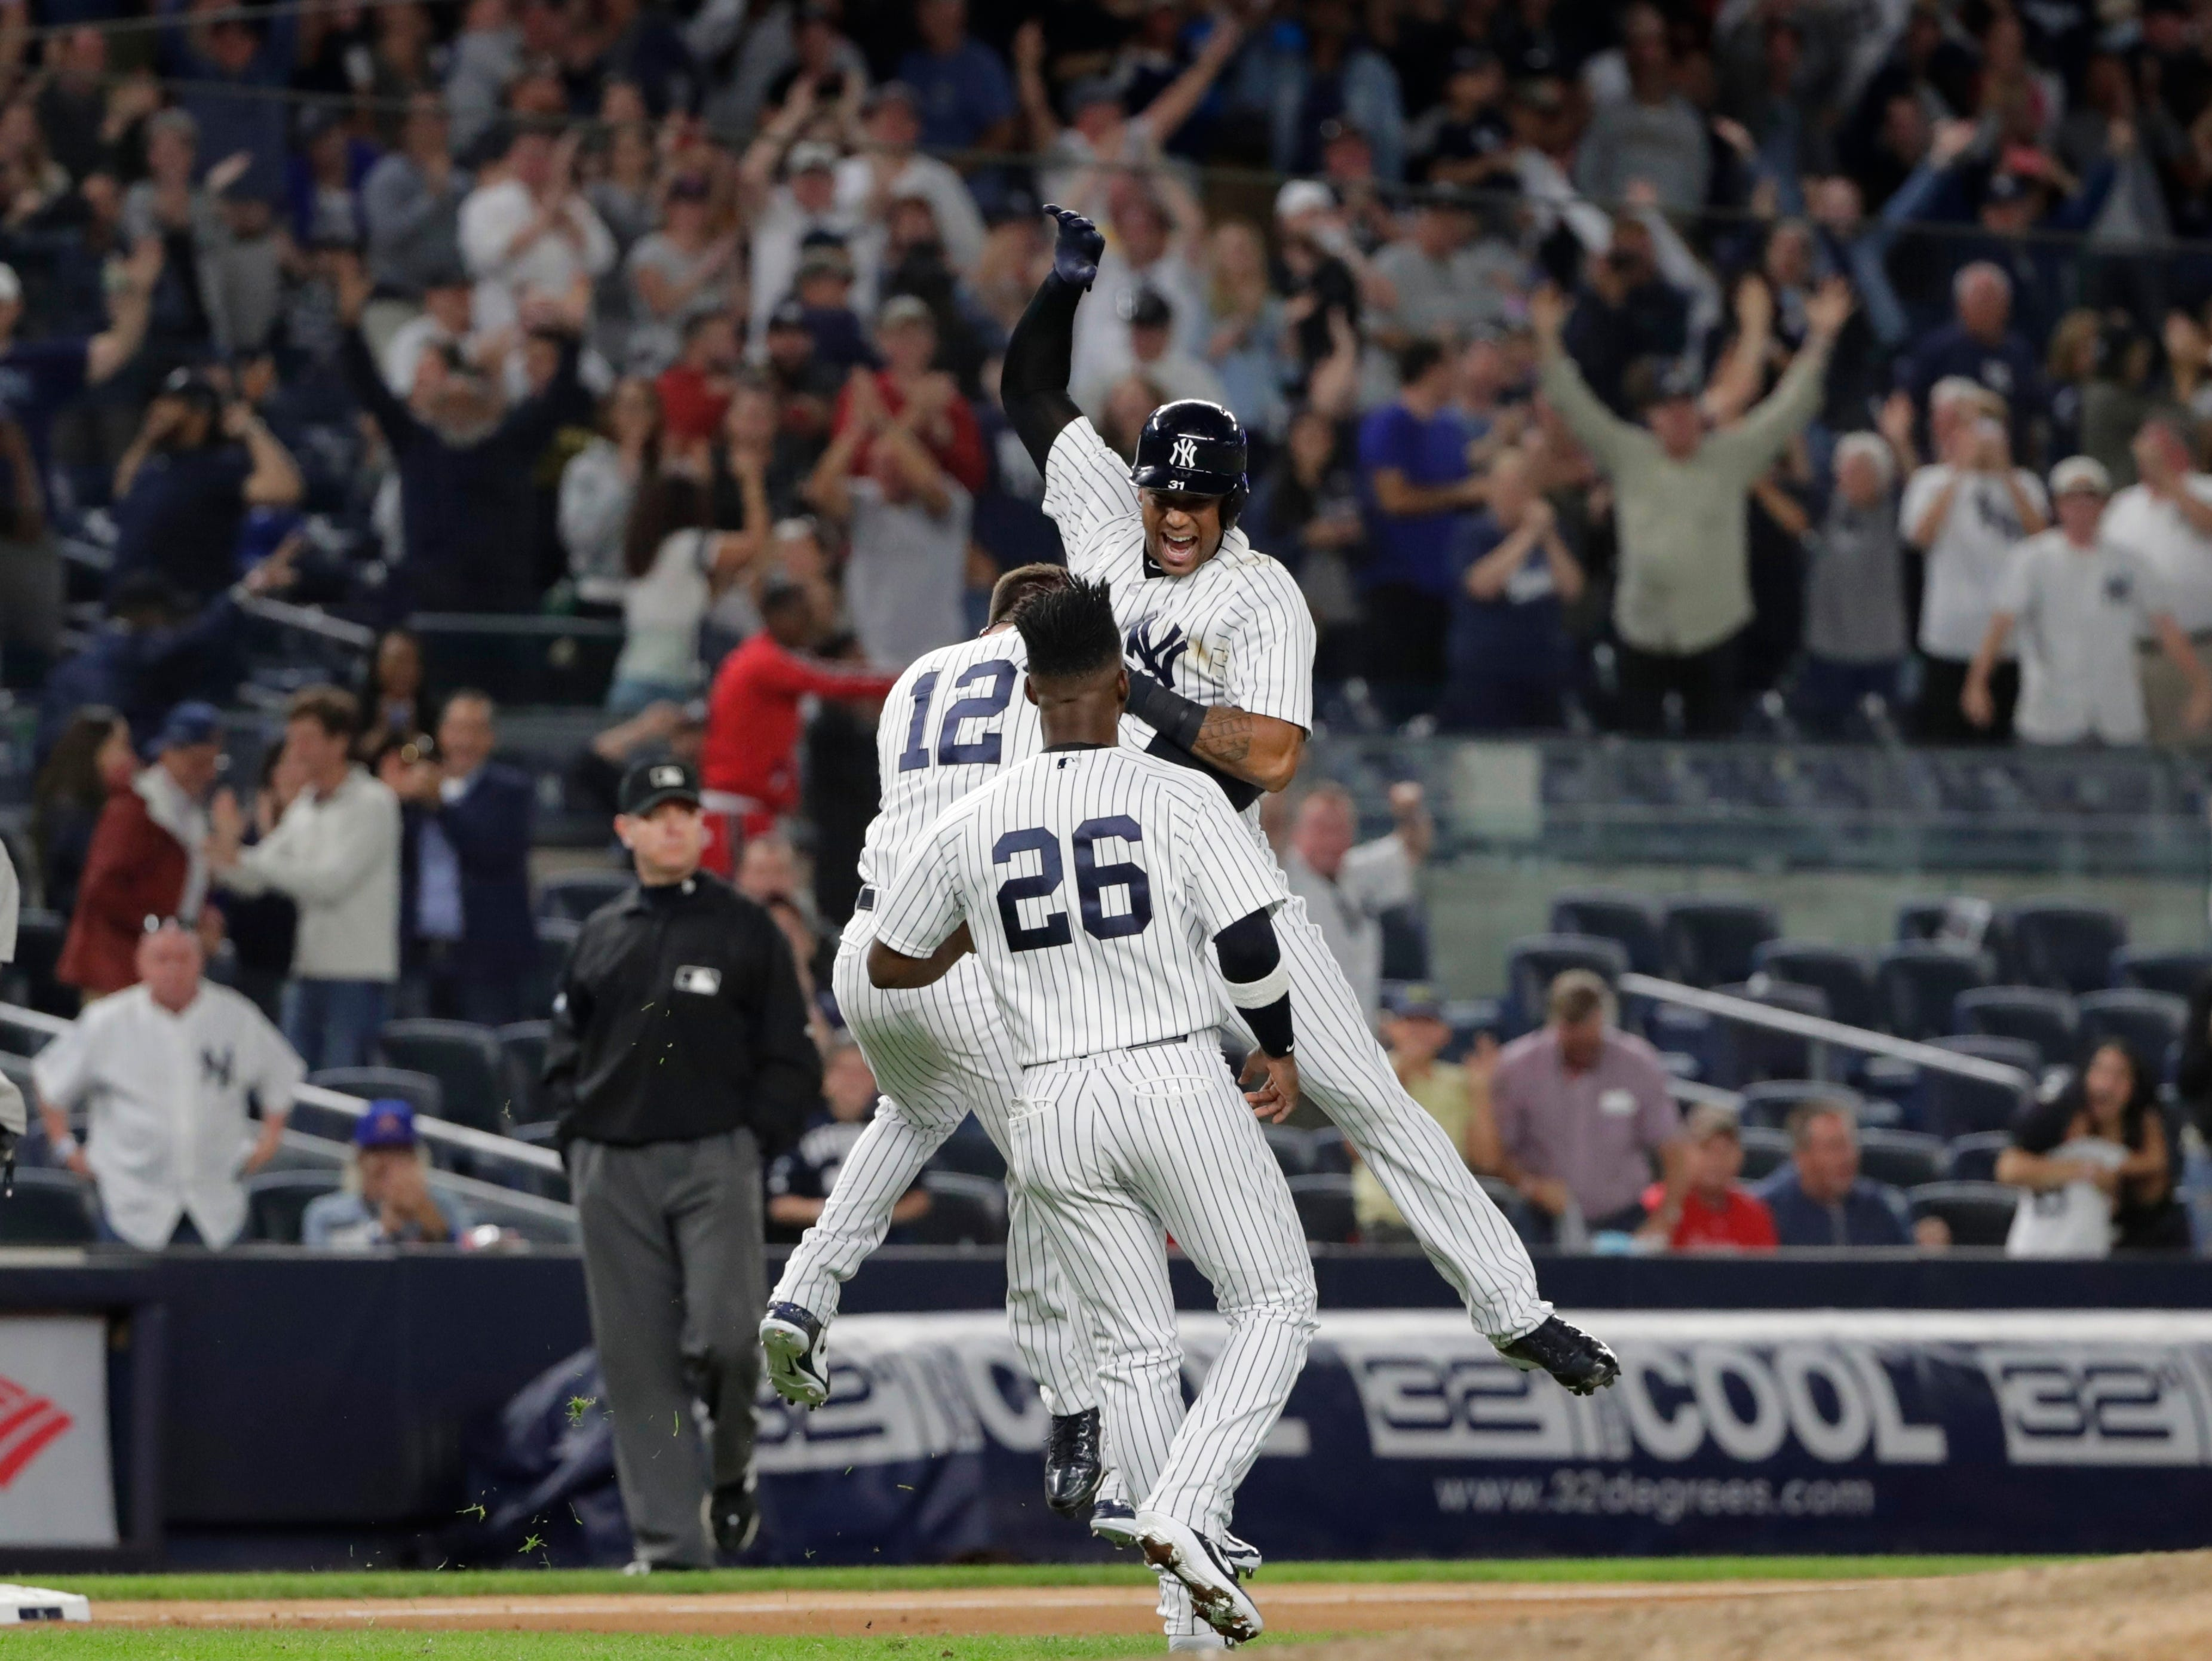 Mlb Wild Card Yanks And As Fighting For Home Field Advantage